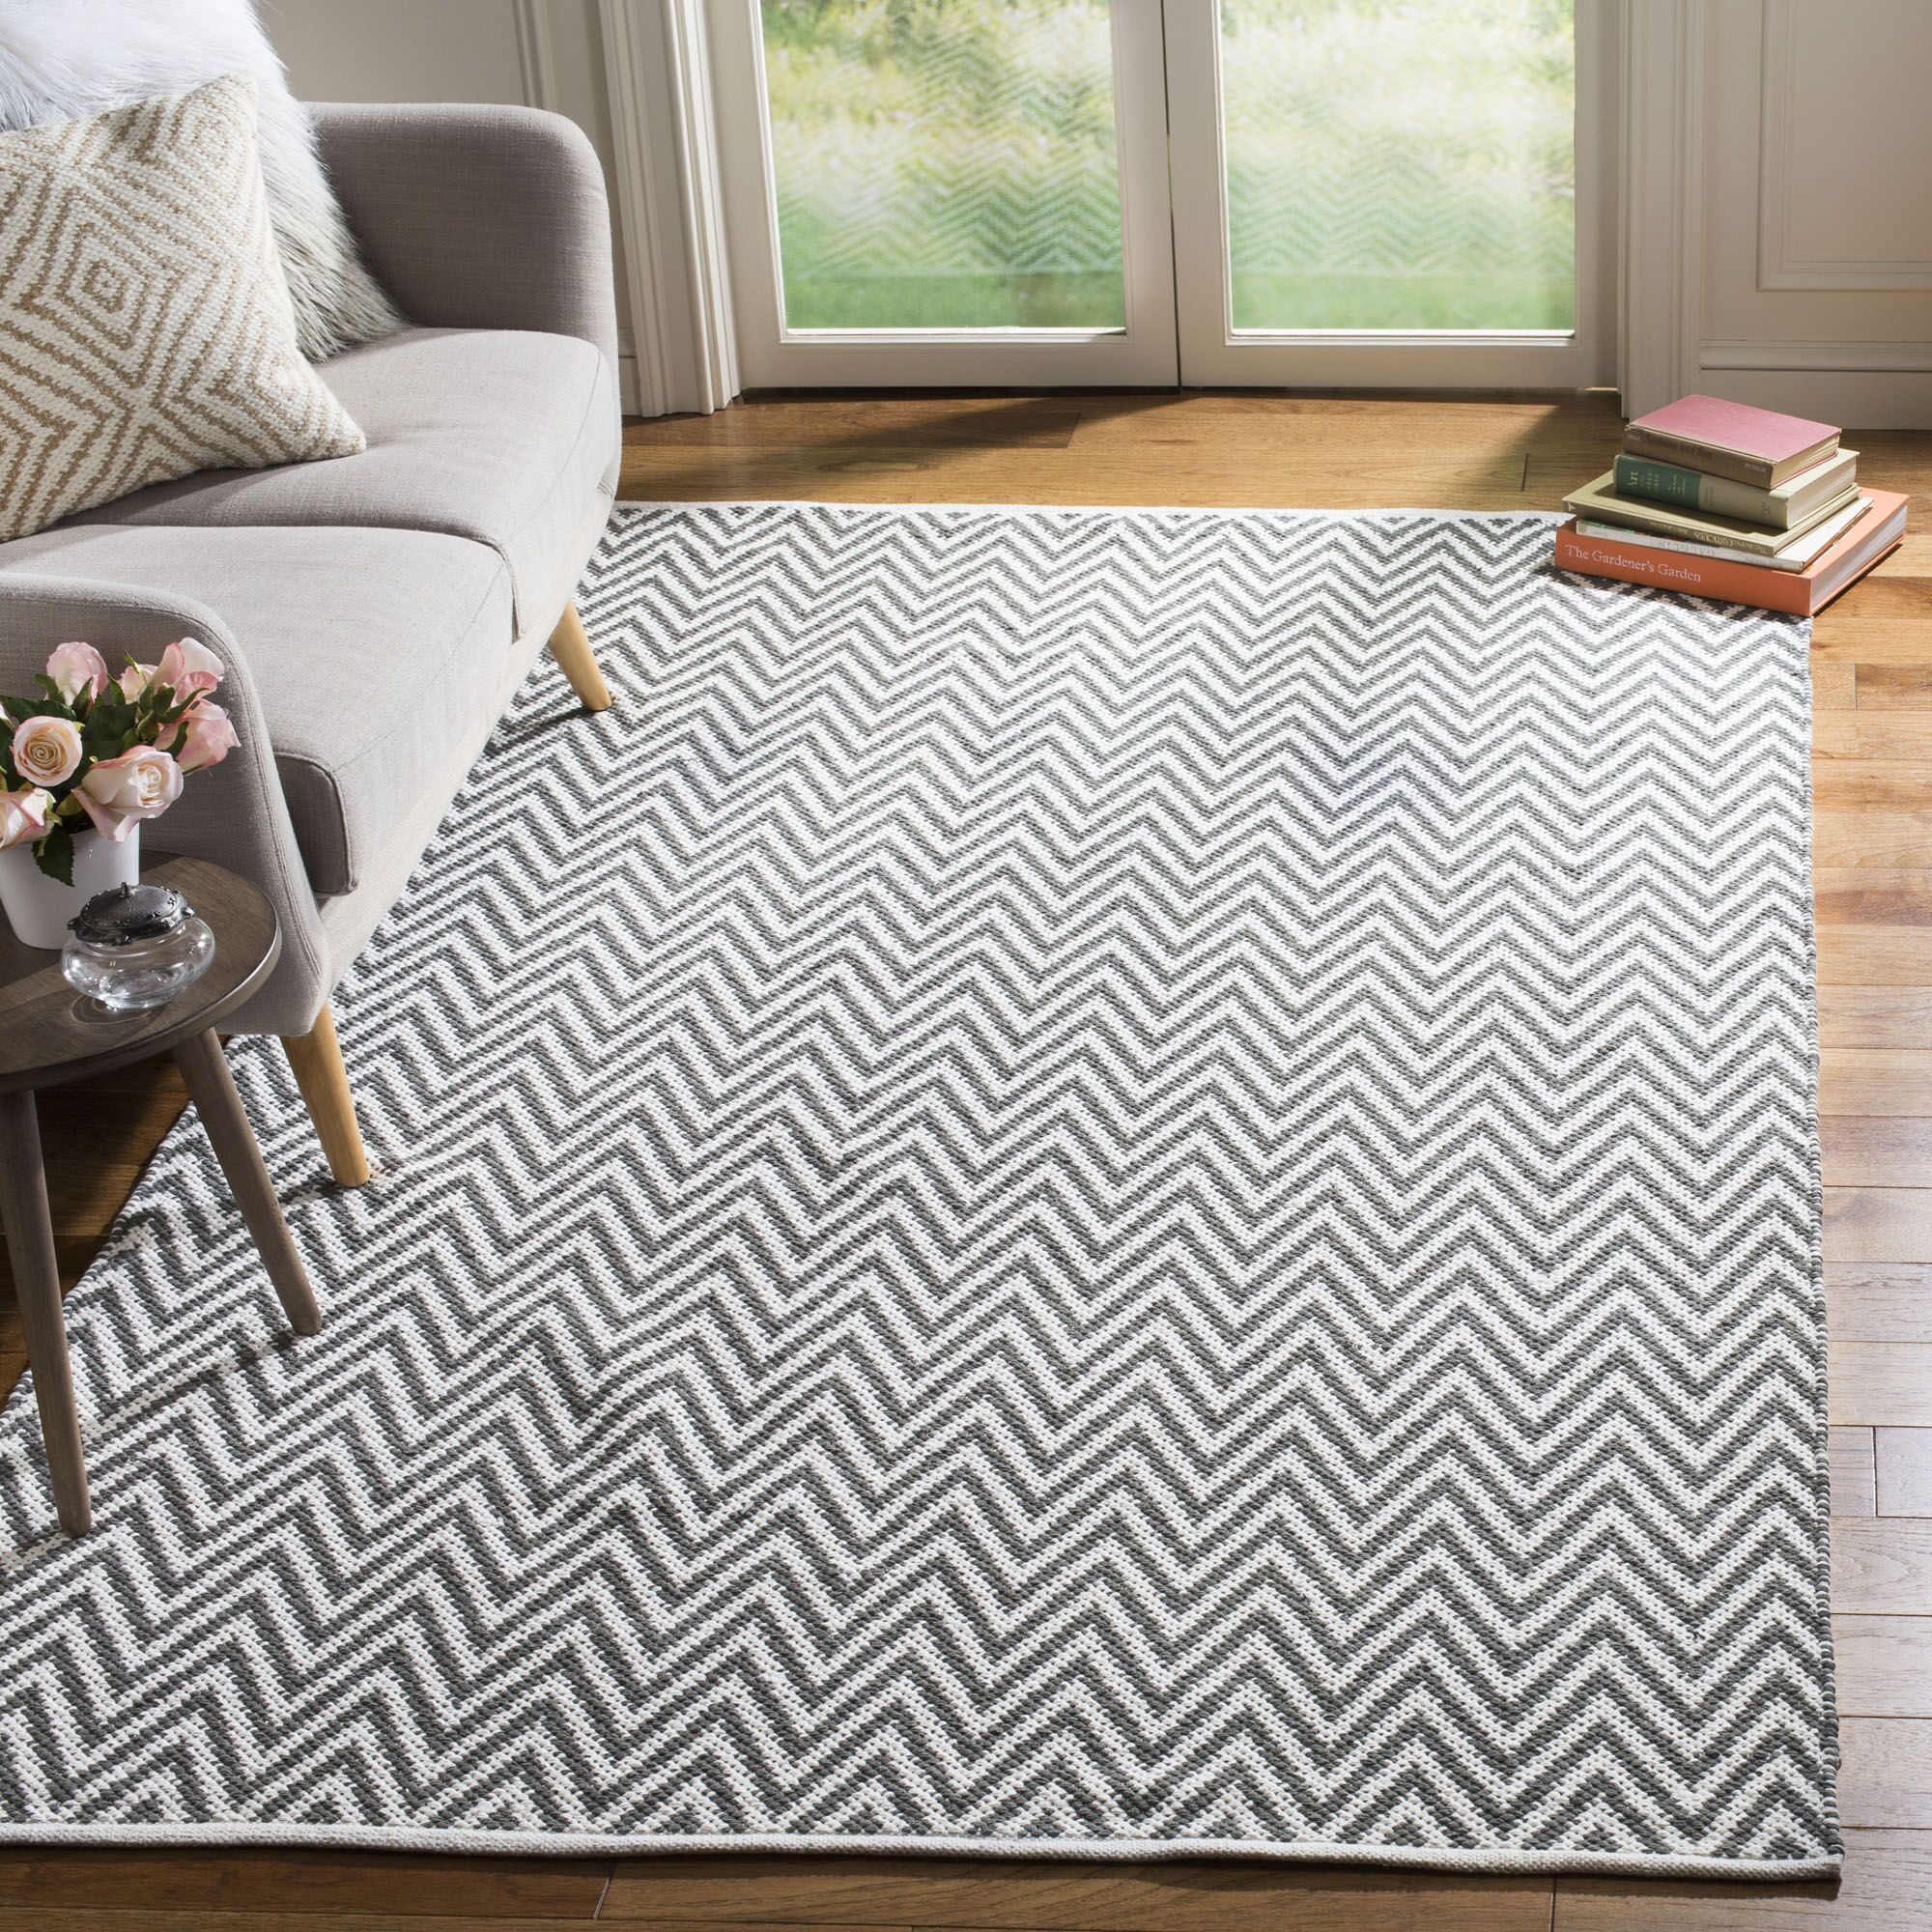 Whitton Hand-Woven Grey/Ivory Area Rug Rug Size: Rectangle 4' x 6'